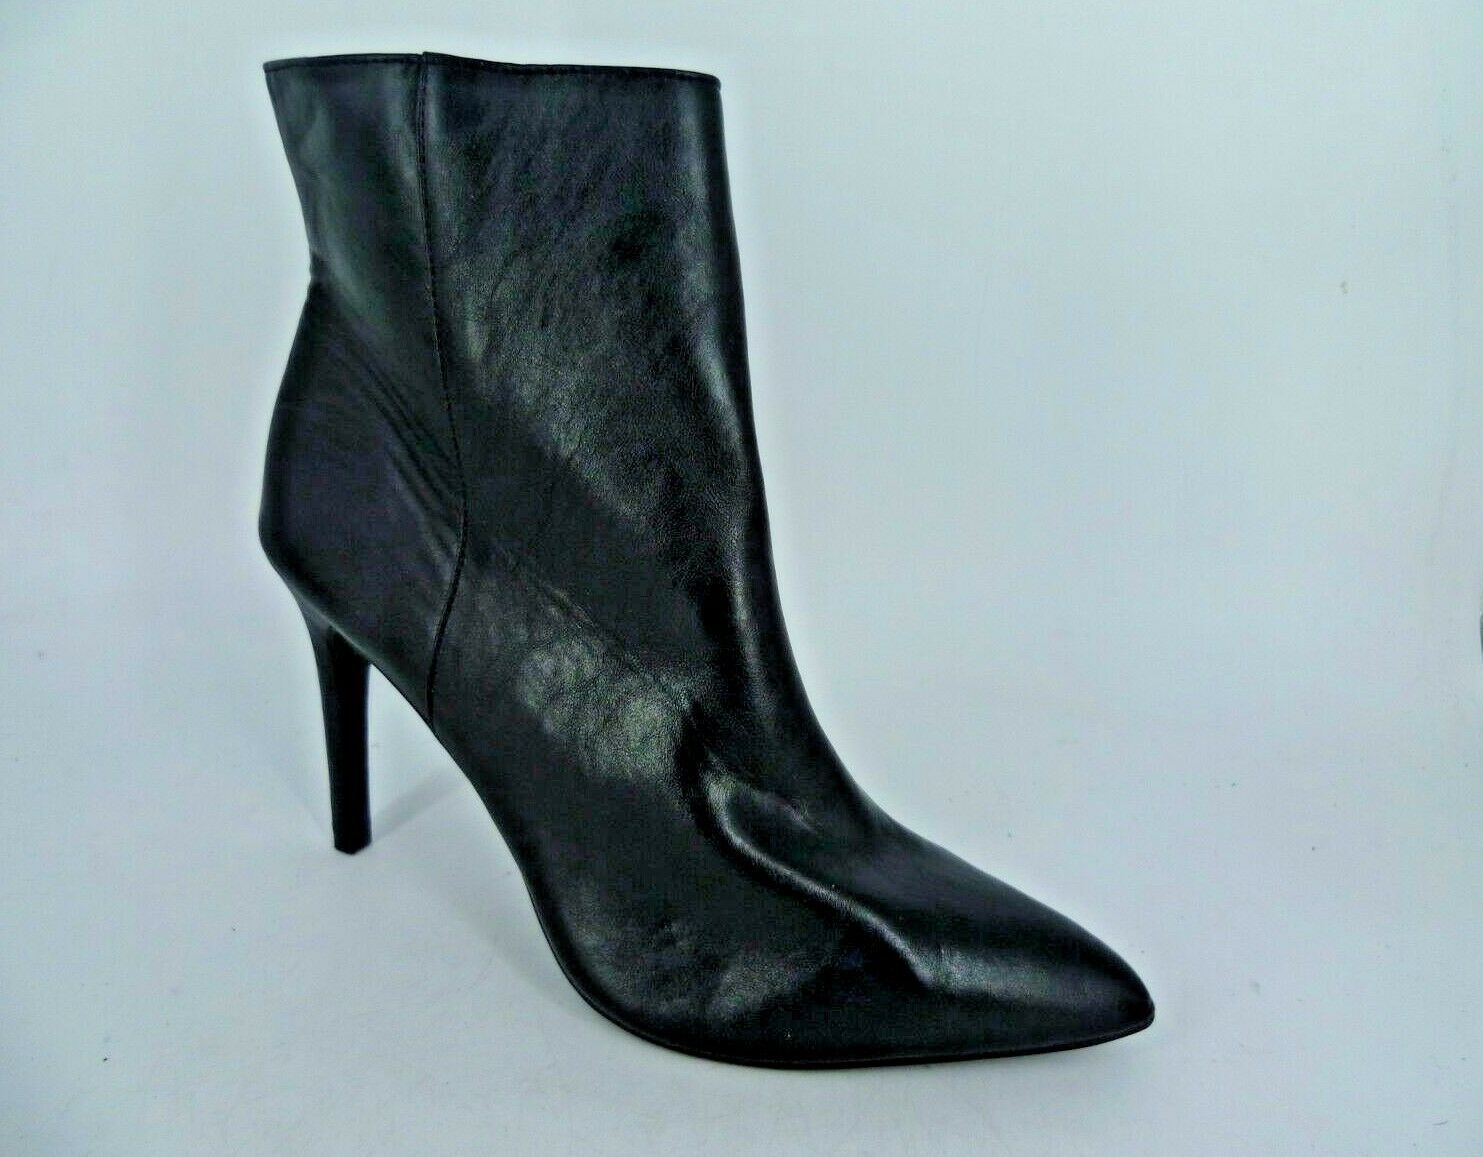 Marks & Spencers Insolia Pointed Toe Heeled Ankle Boots LN092 QQ 07